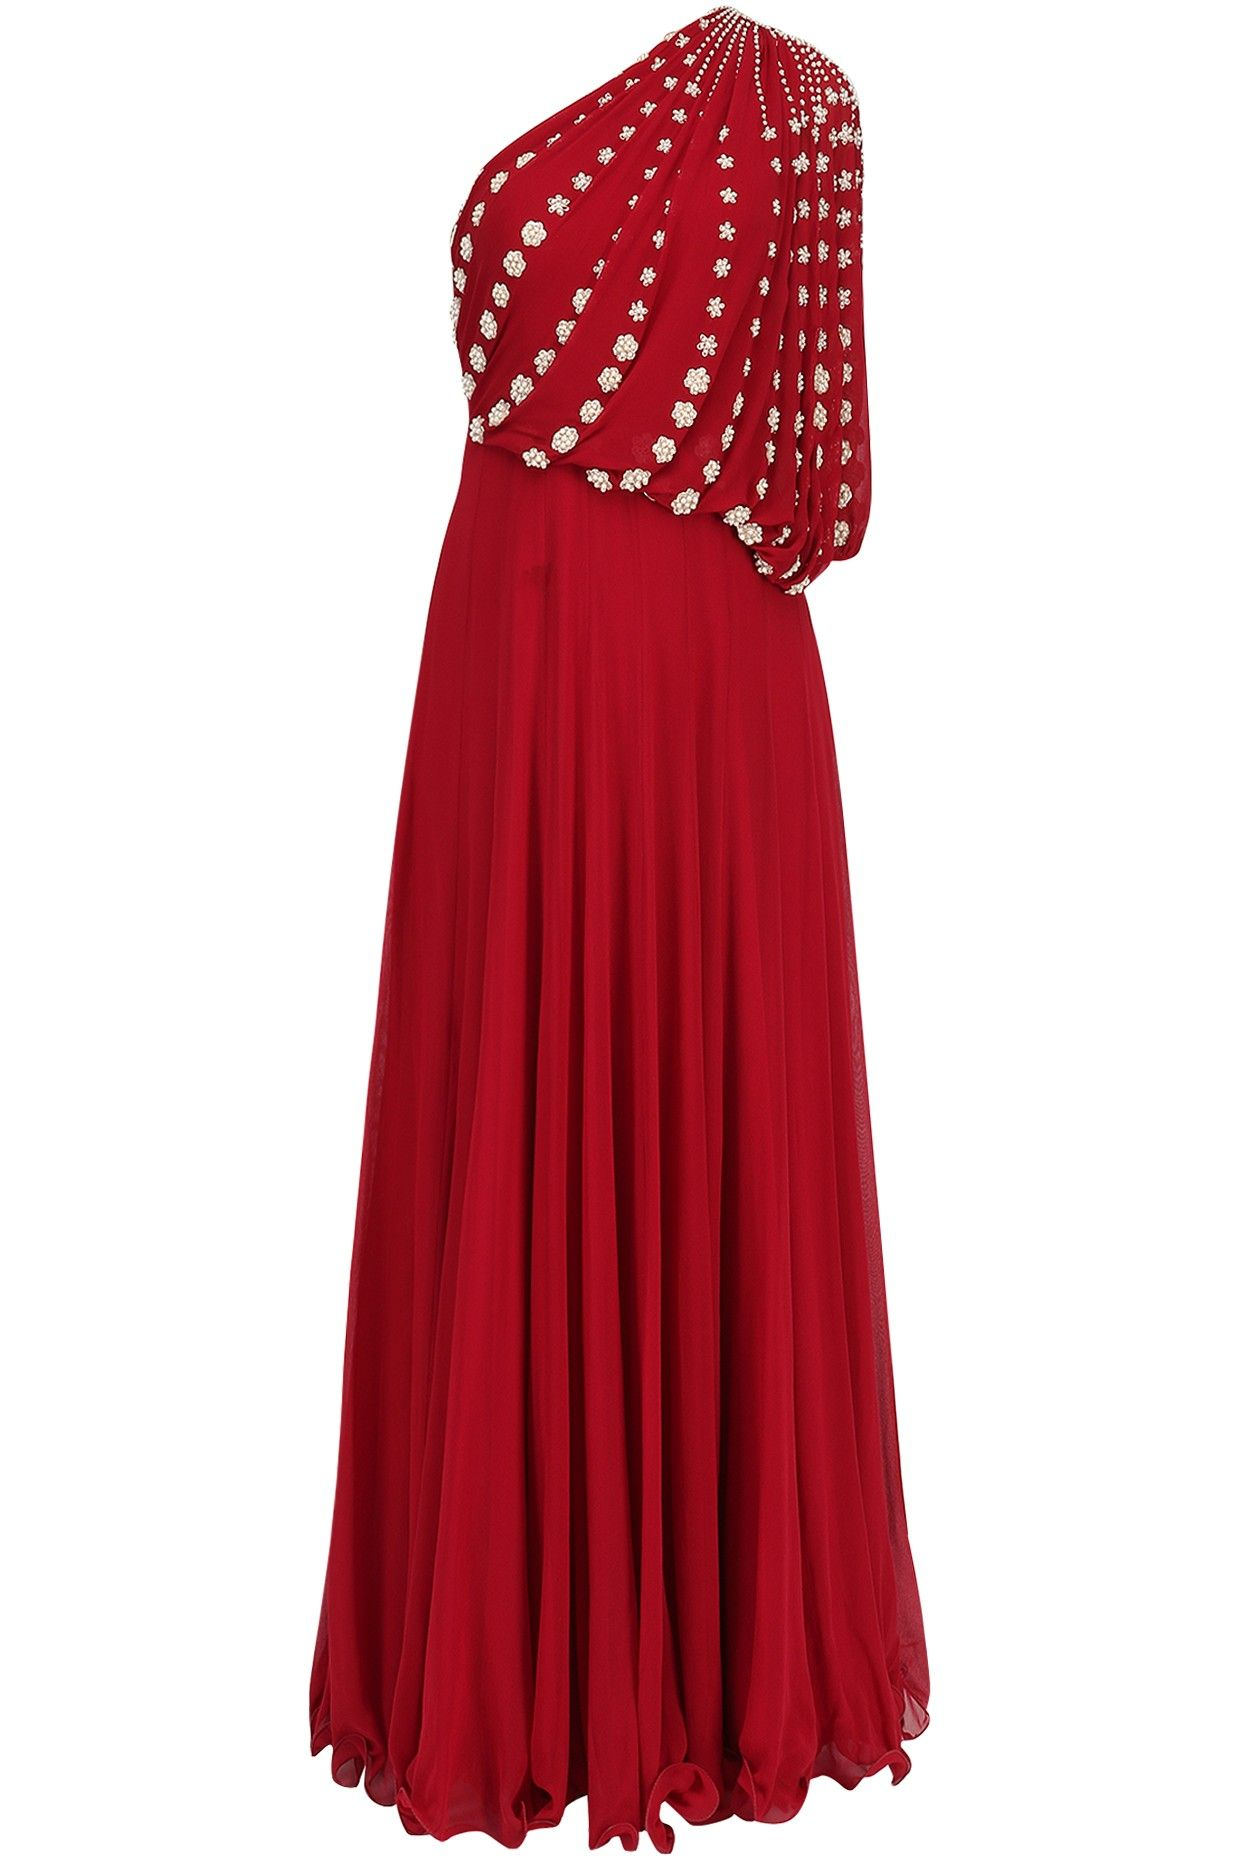 e8beb21ca68 Seema Thukral Red Embroidered Off Shoulder Gown